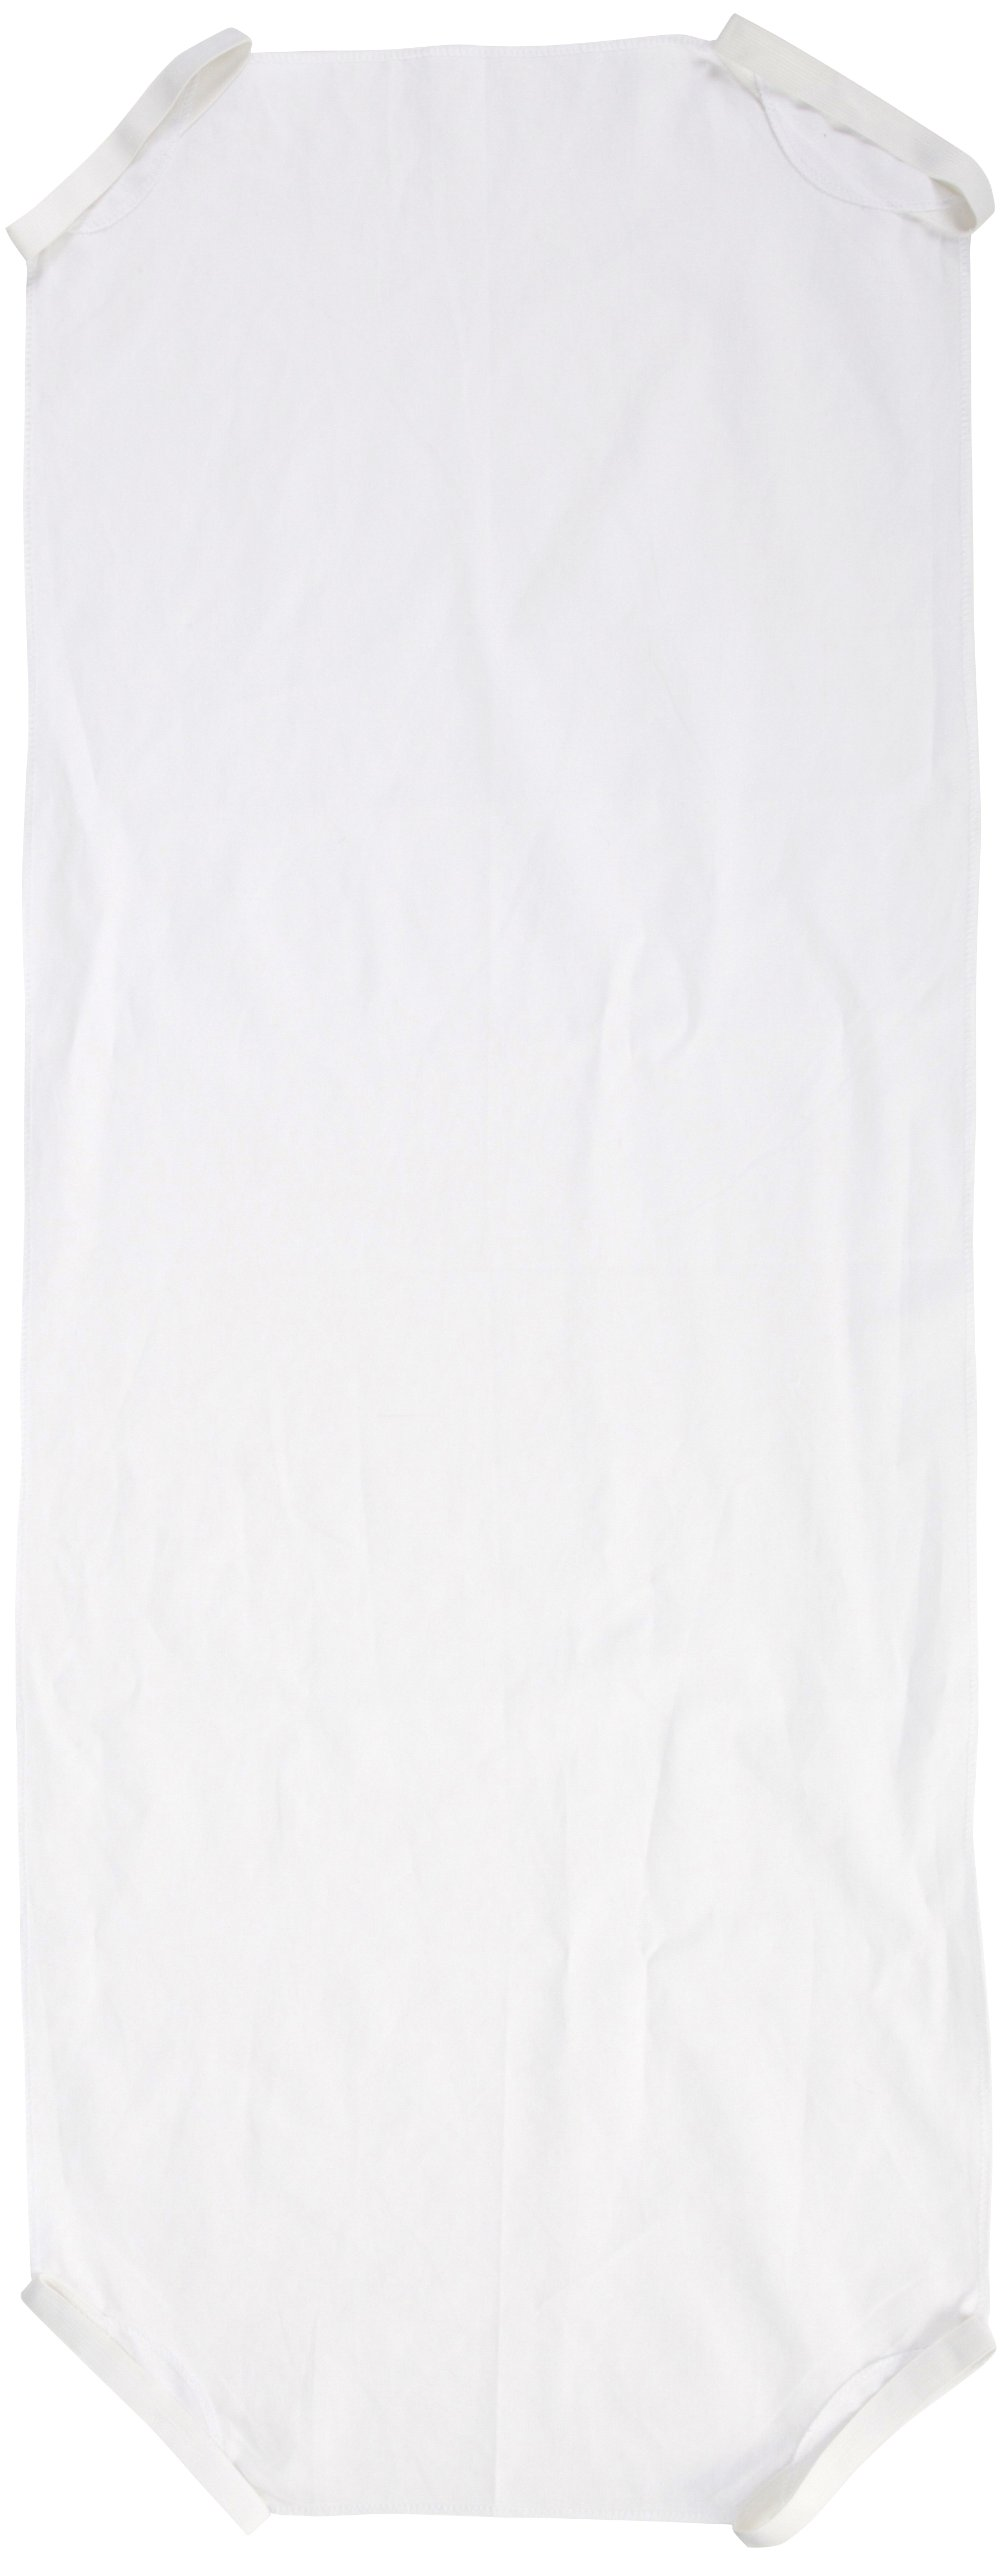 Wood Designs WD87890 Carton of (6) White Cotton Cot Sheets by Wood Designs (Image #1)